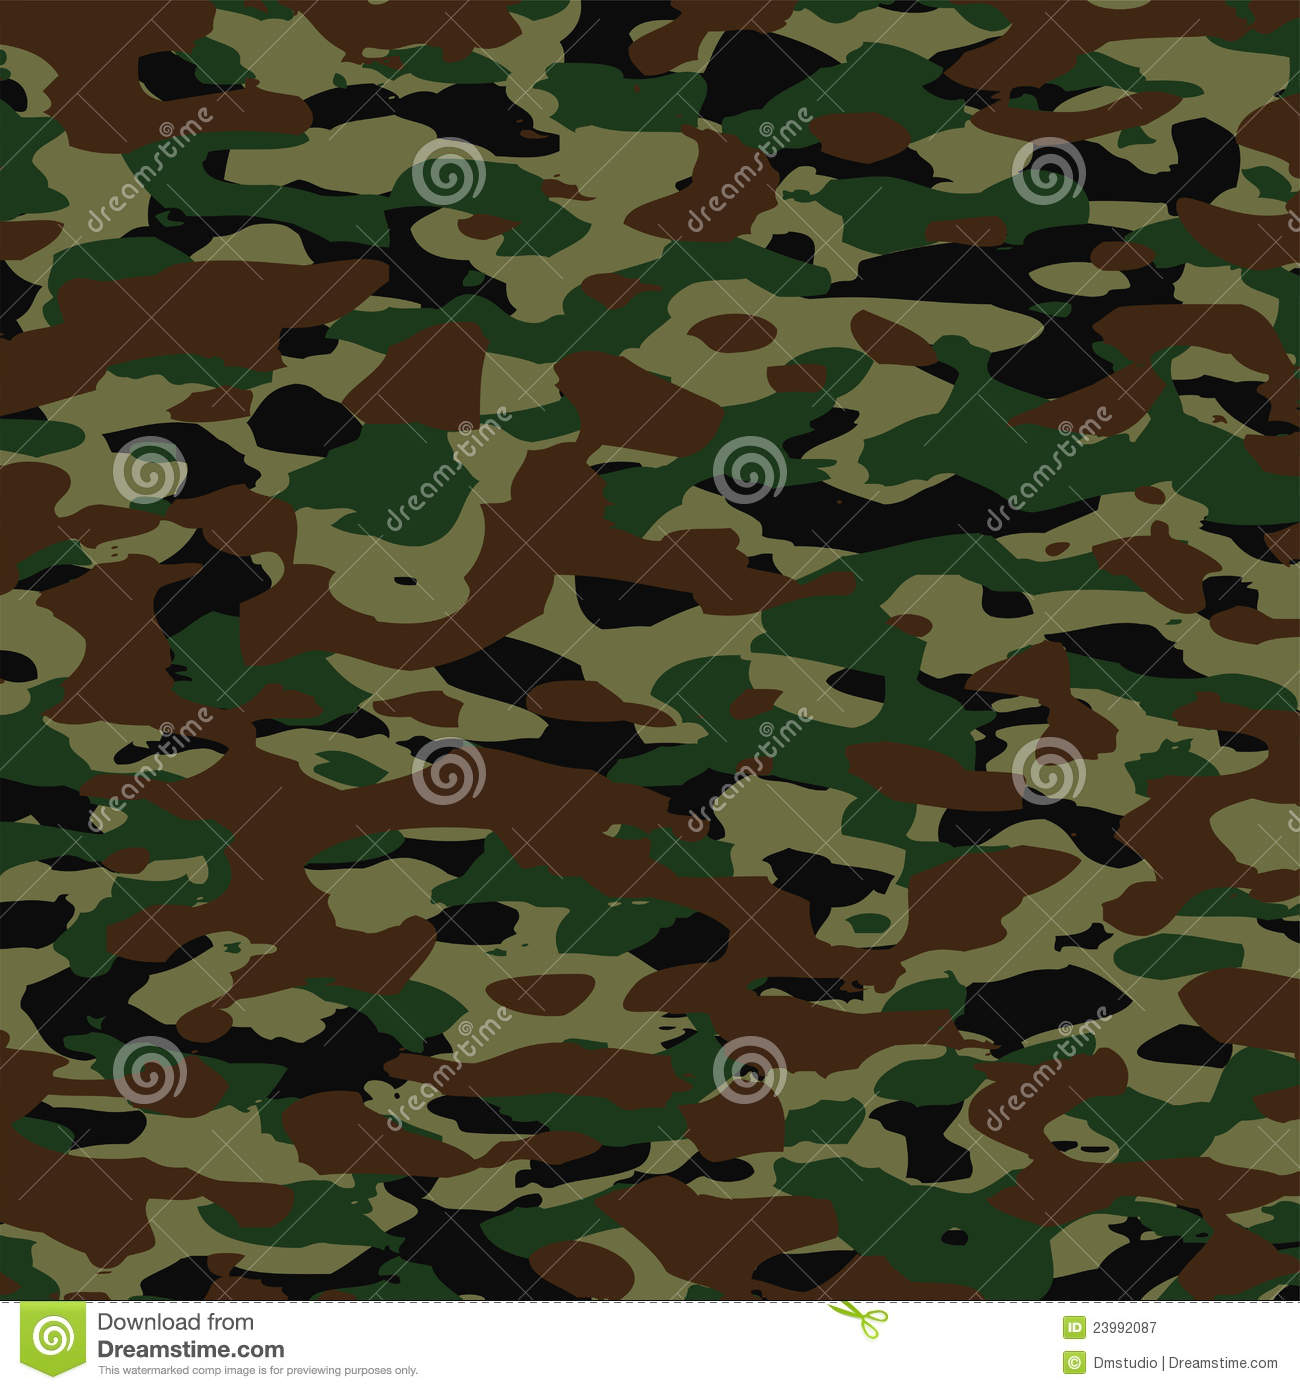 Black Camouflage Wallpaper Vector Camouflage Pattern Royalty Free Stock Photography